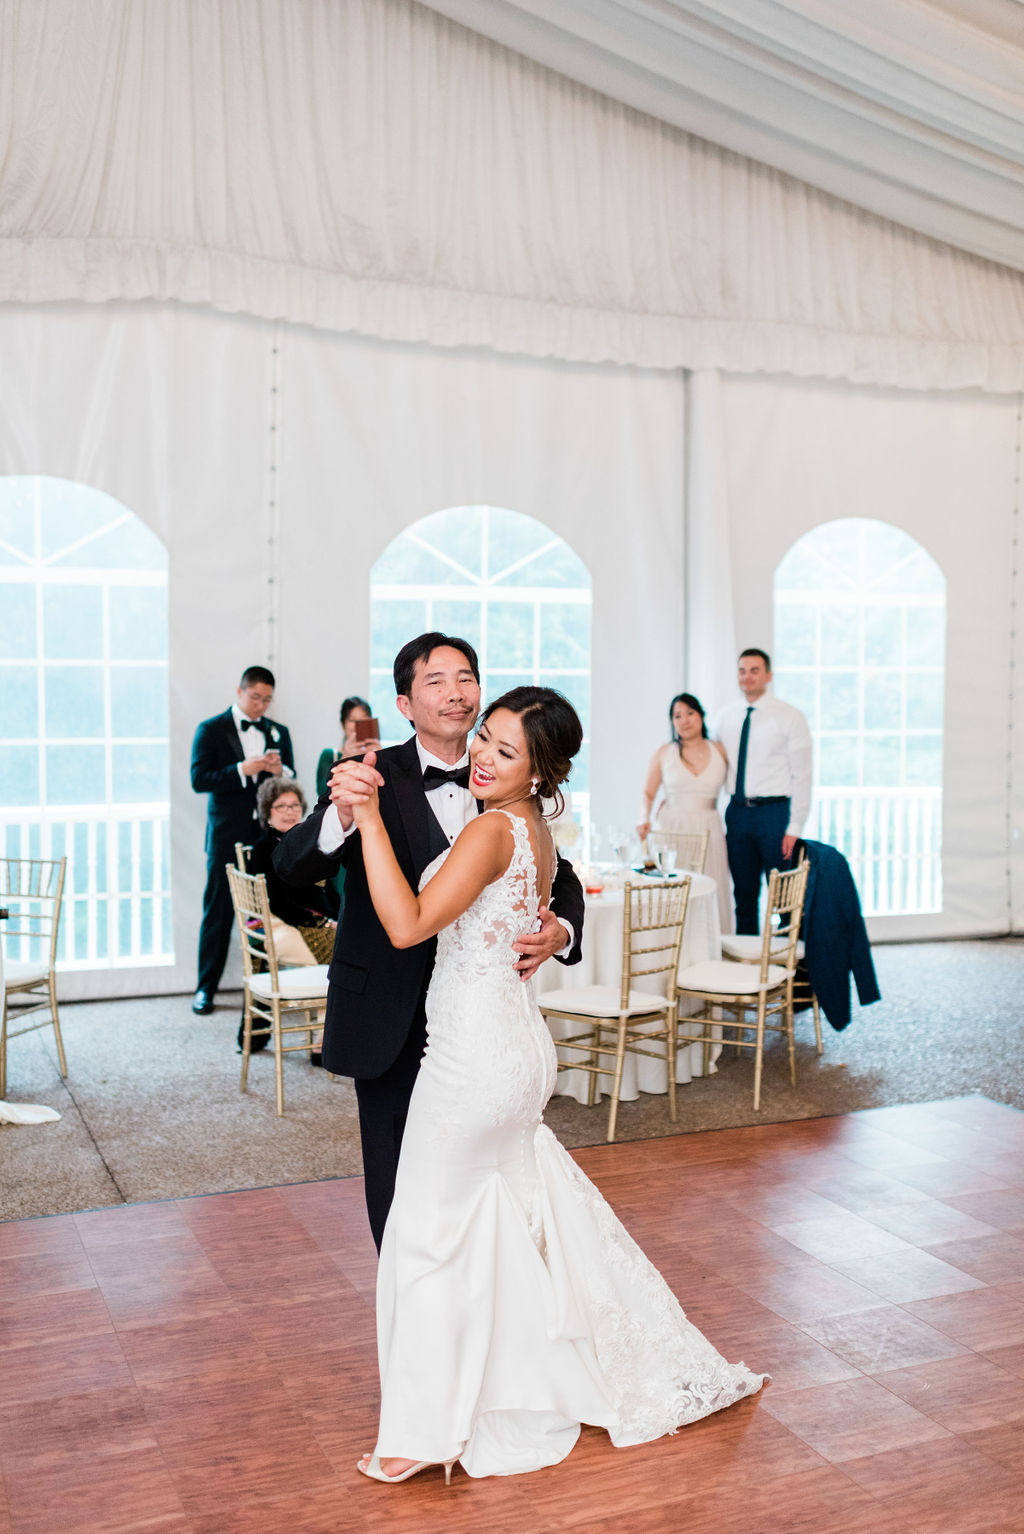 Father/daughter dance for Nashville Wedding captured by Maria Gloer Photography